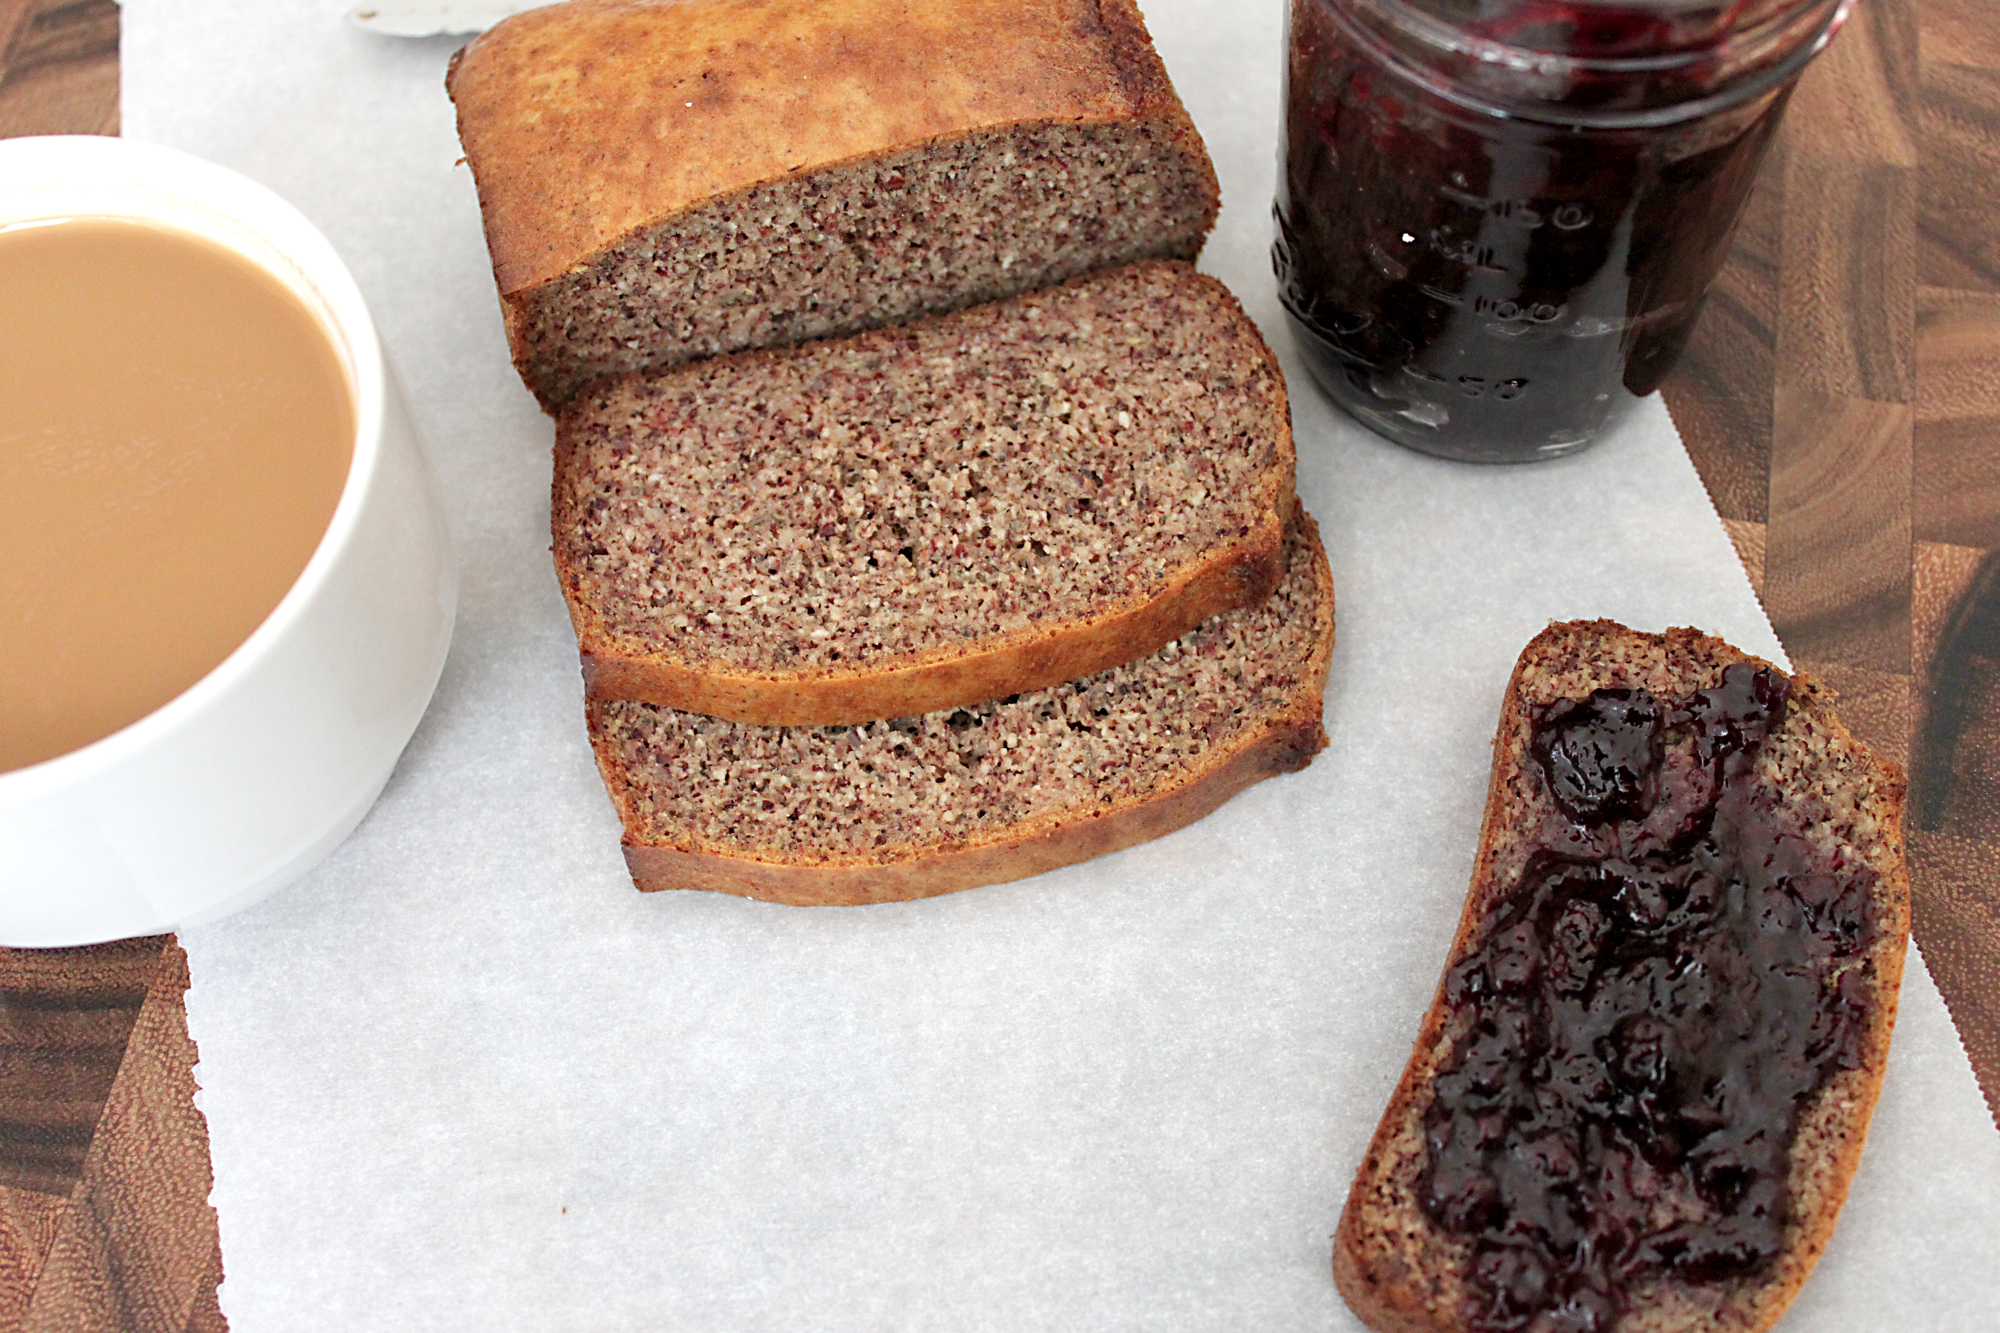 Almond Flour Bread From the Kitchen: Almo...